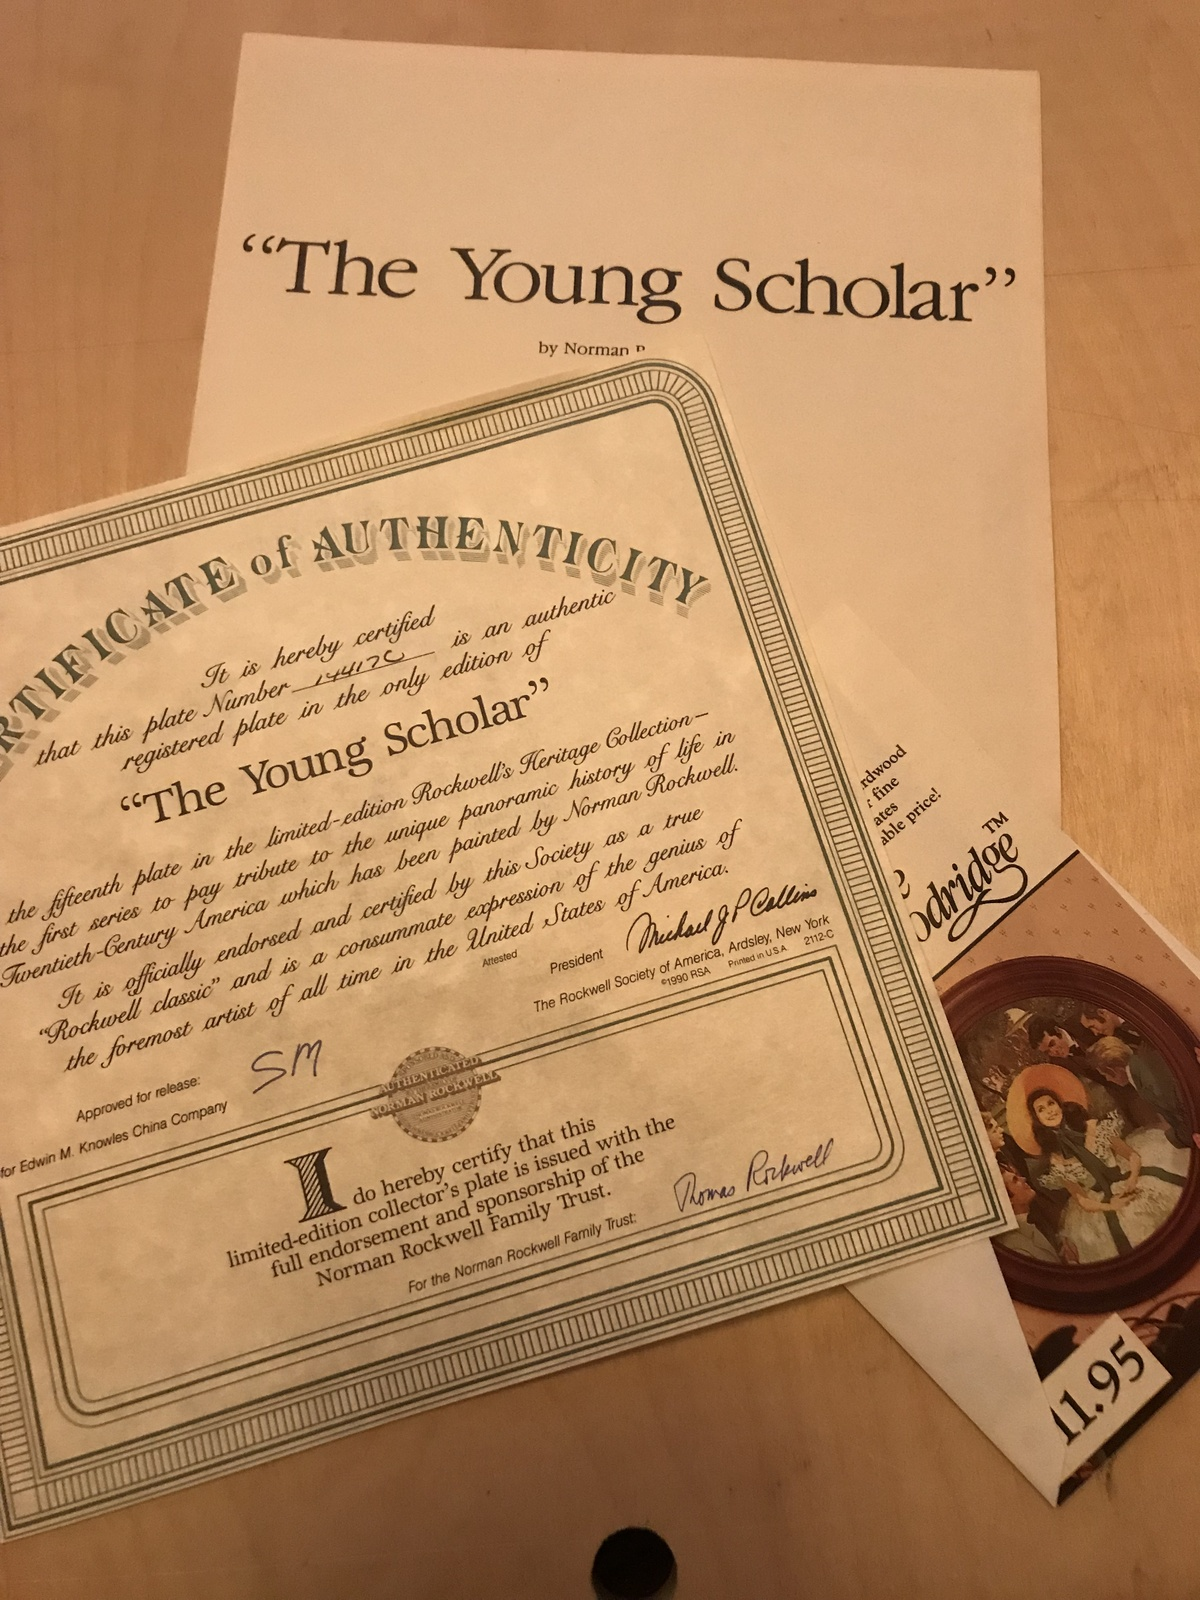 Knowles - The Young Scholar - Ltd Ed 1990 - 14417C